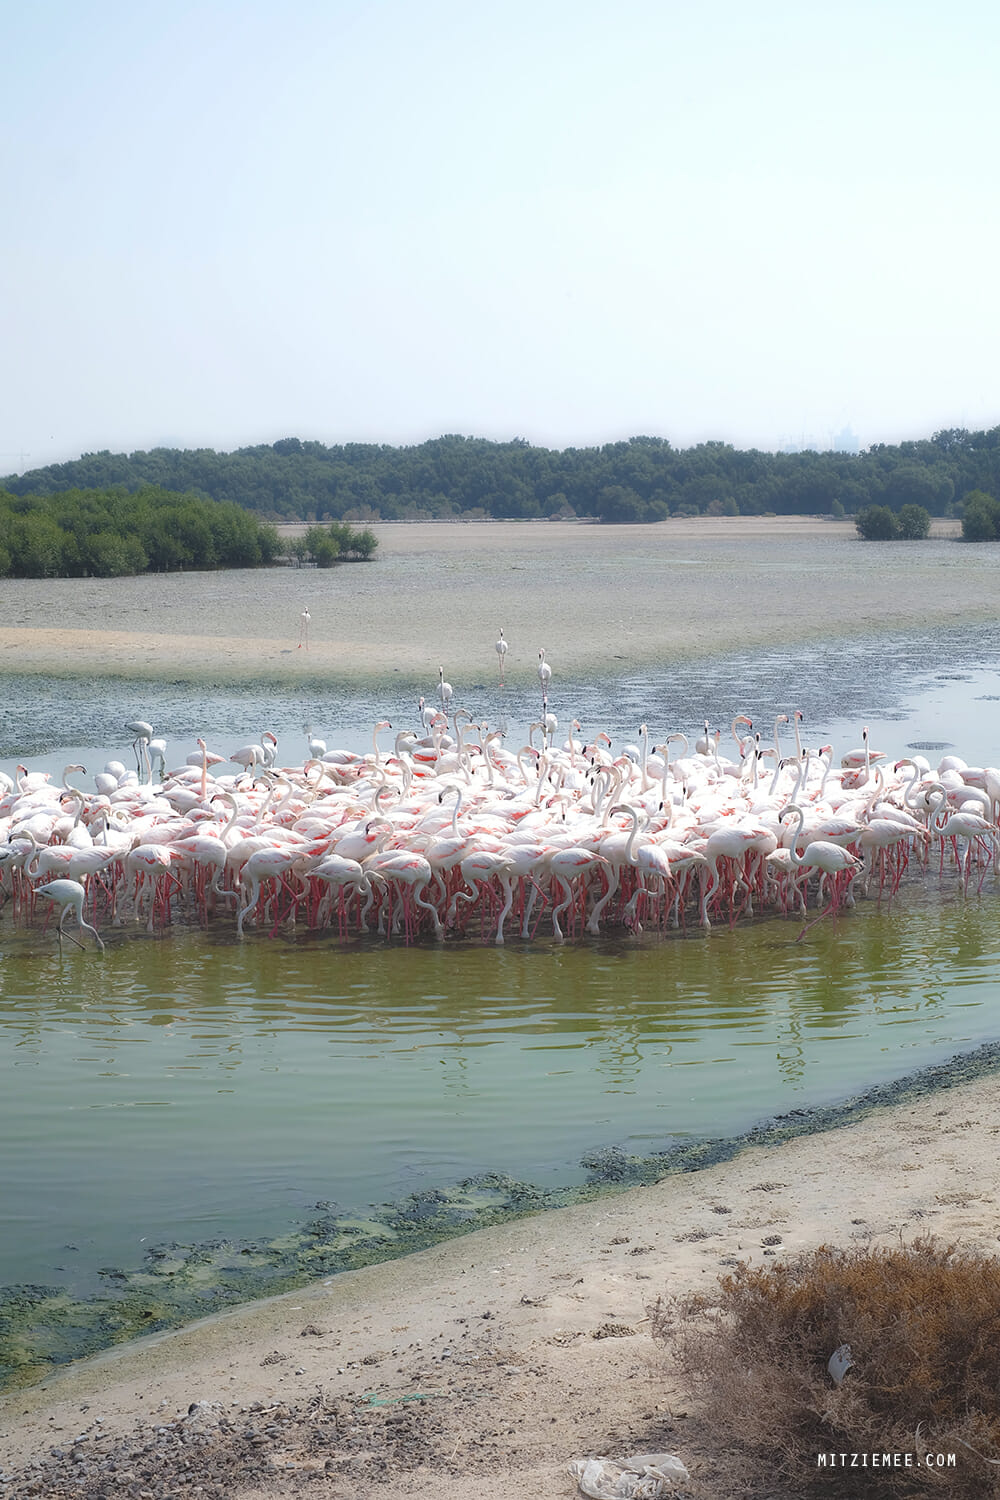 Flamingos at Ras Al Khor Wildlife Sanctuary, Dubai